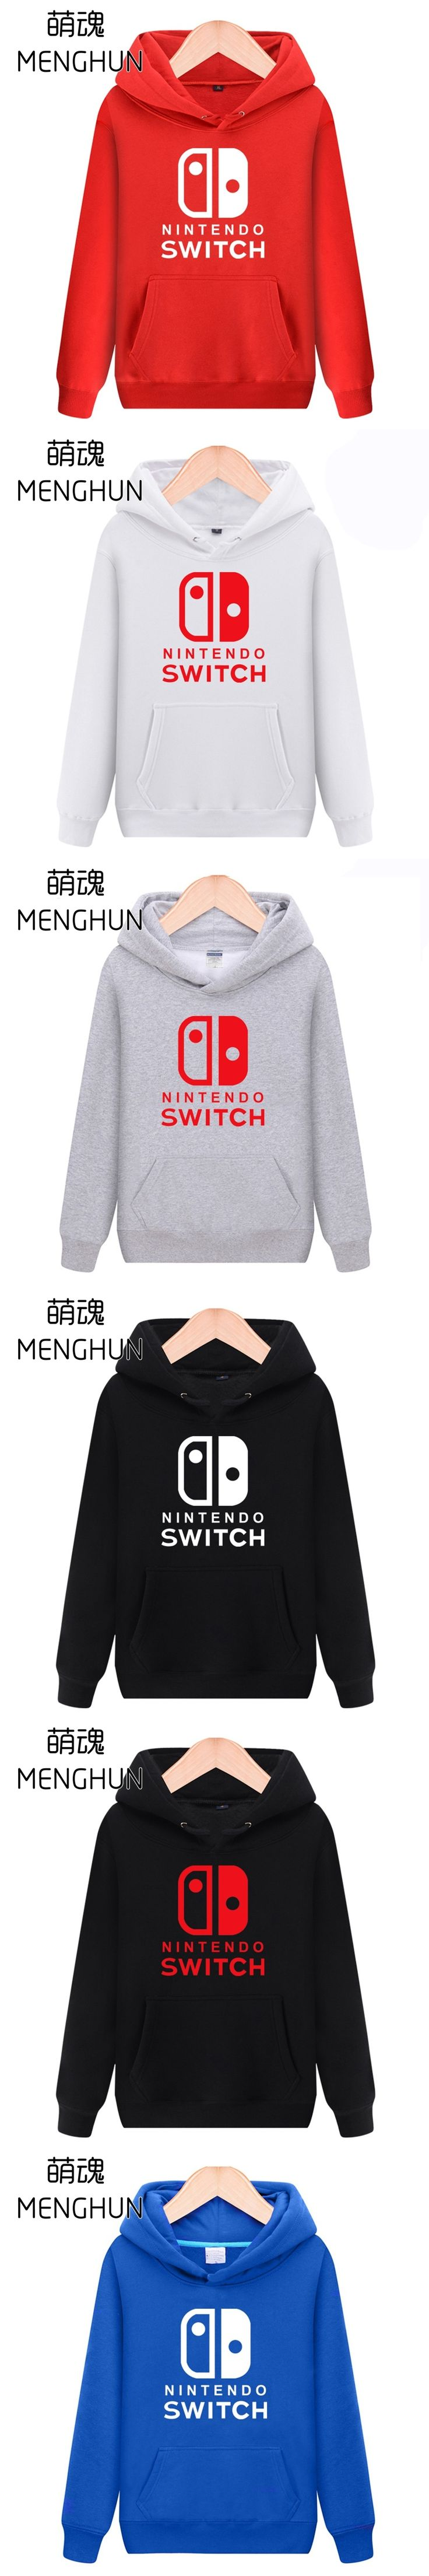 new game console Switch concept men's hoodies gift for game fans warm Spring Winter costume Switch hoodies ac695